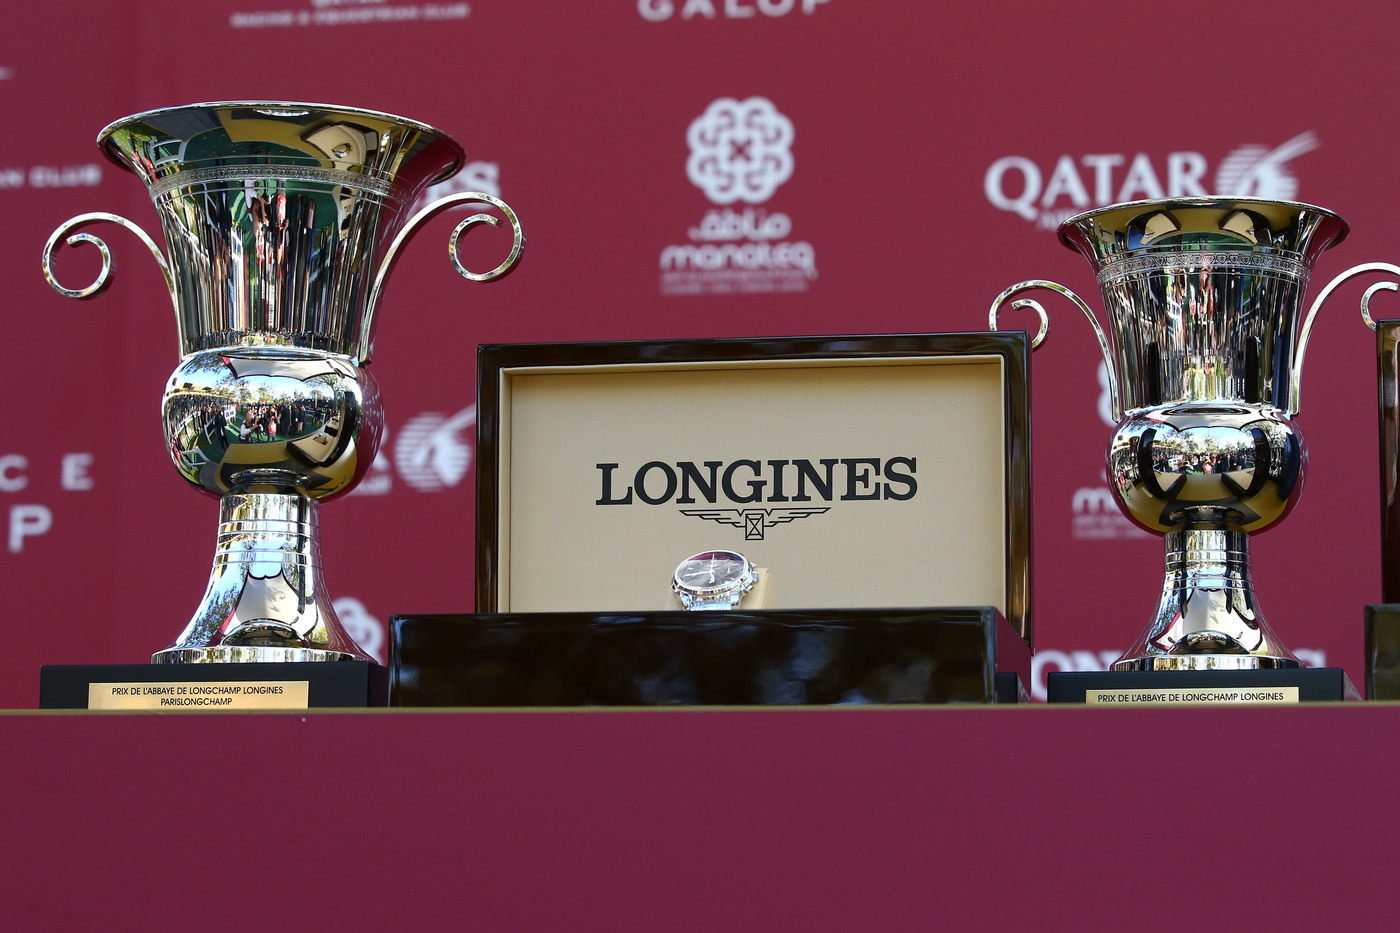 Longines Flat Racing Event: Waldgeist wins the 98th edition of the Qatar Prix de l'Arc de Triomphe 11